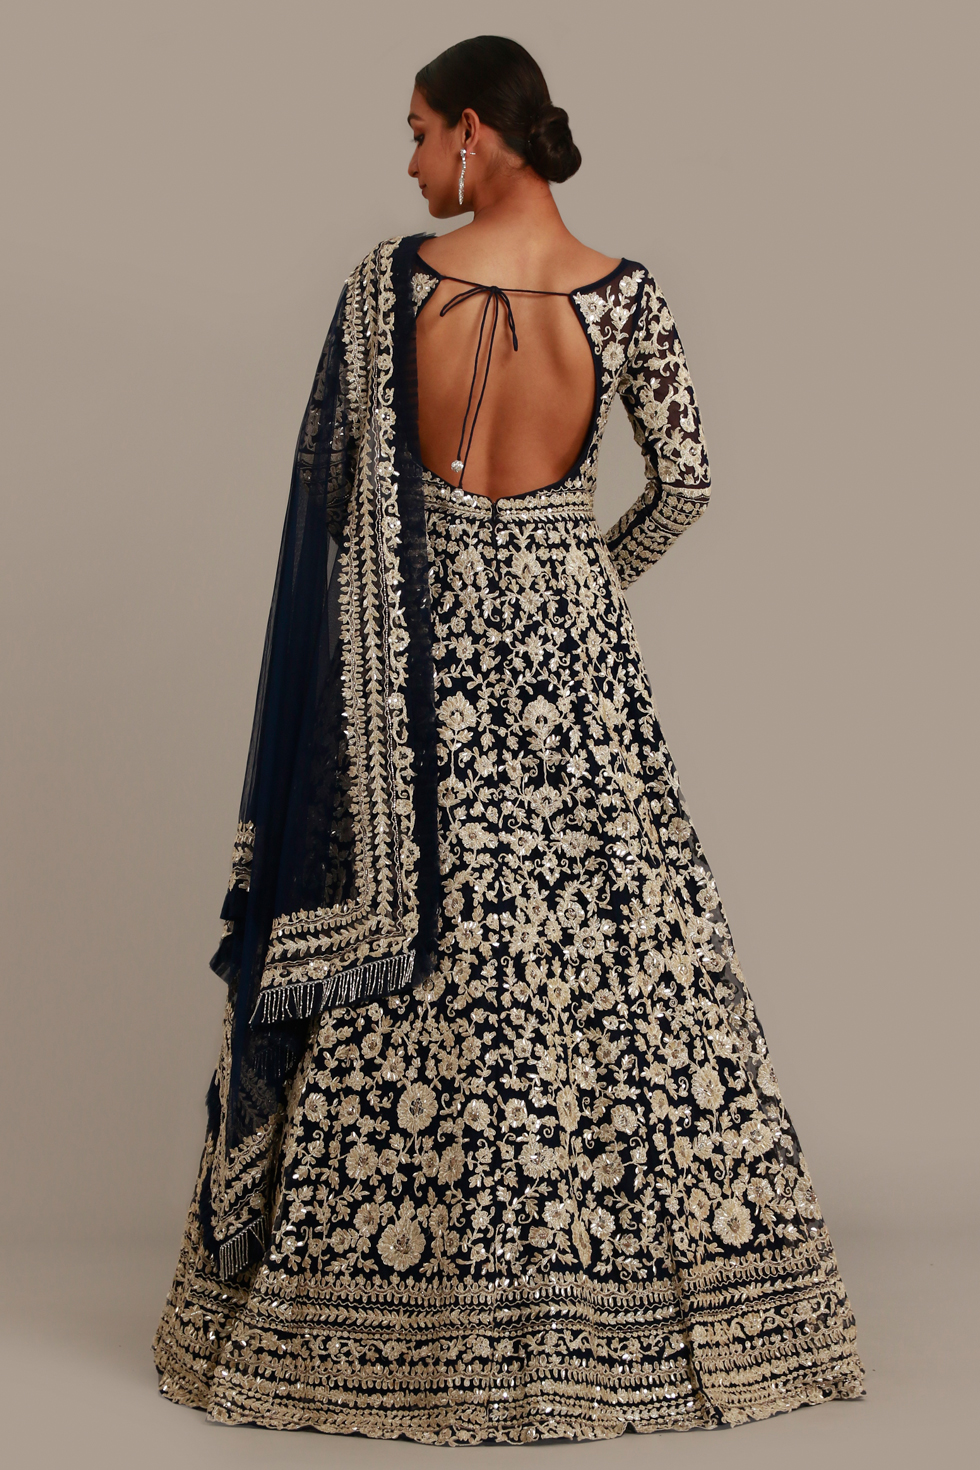 Navy Blue Anarkali gown set with badla zari embroidery and matching dupatta with frill details